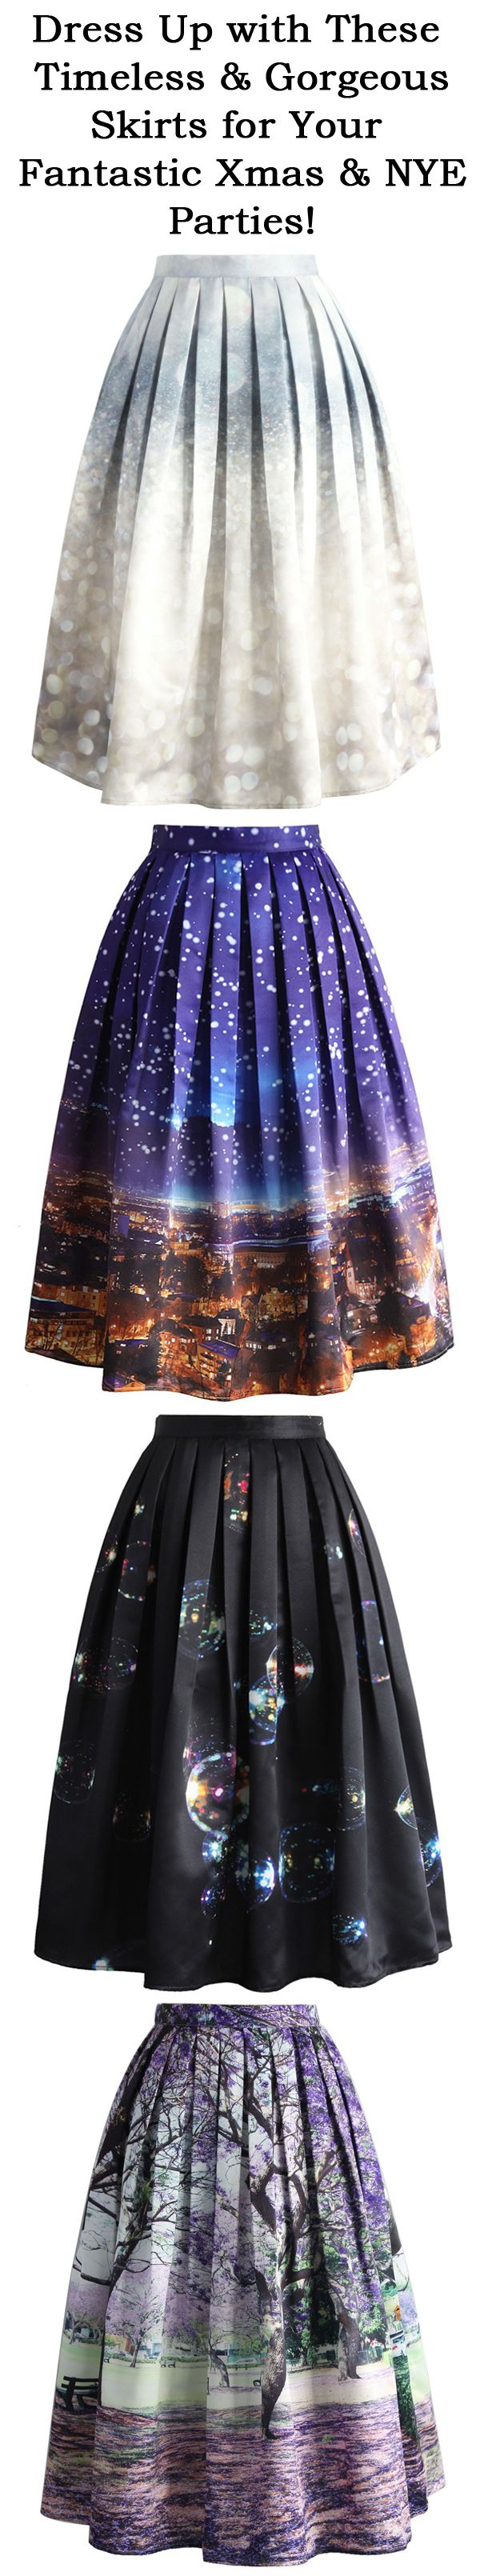 dress up with these timeless and gorgeous skirts for your fantastic Xmas and NYE parties.